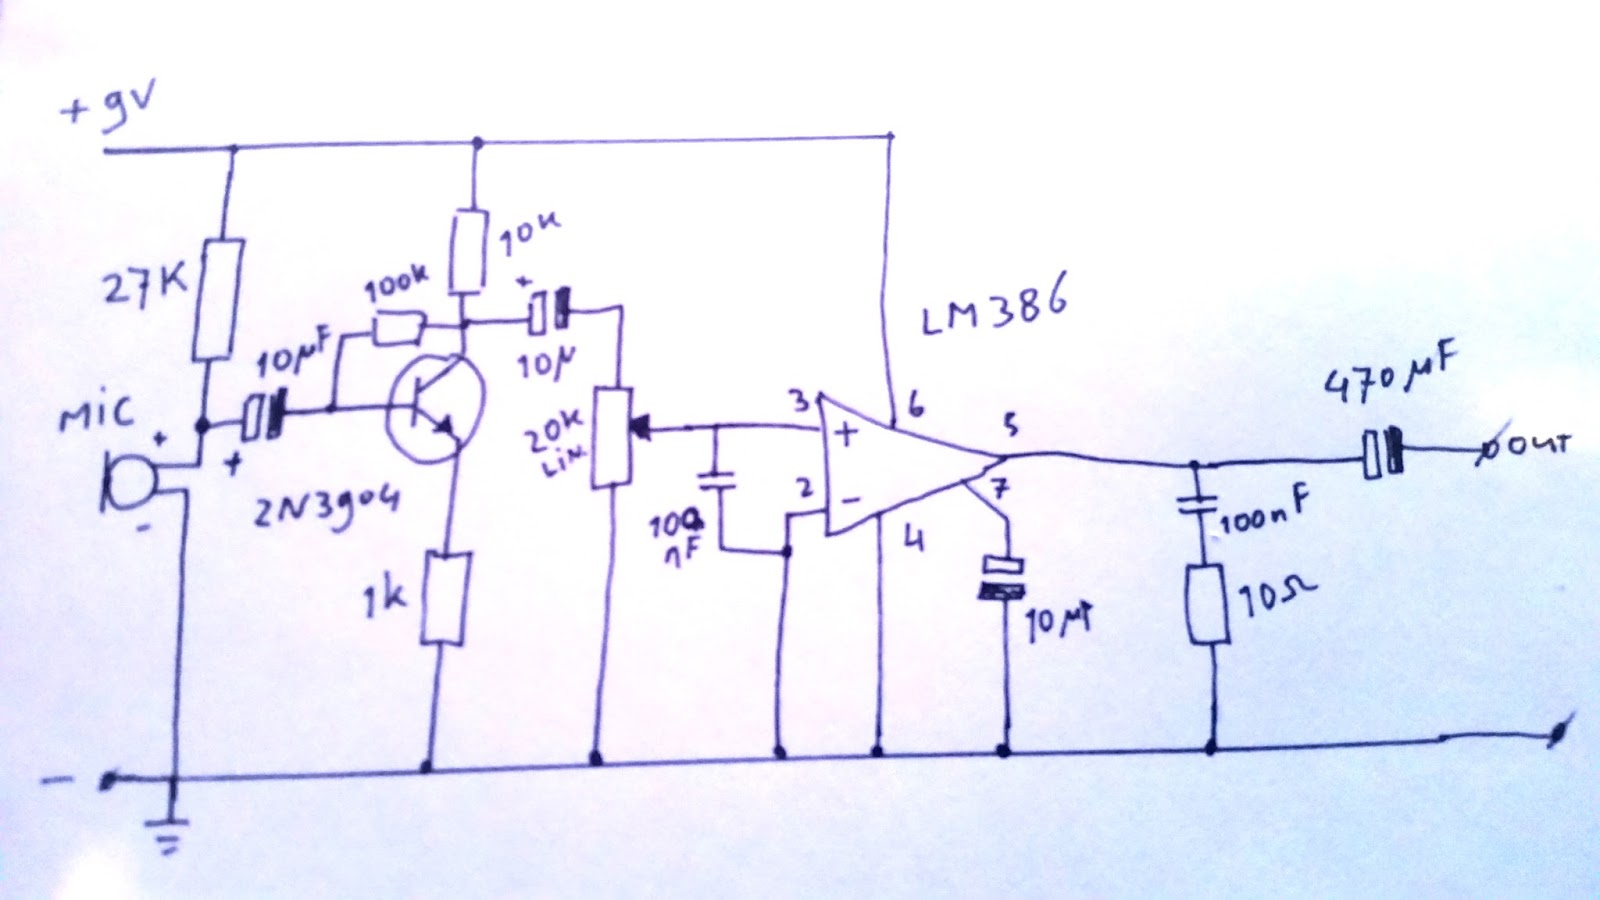 Eddy Bergmancom 2017 Simple Audio Preamplifier Circuit Using Single Transistor 2n3904 I Build It With A As Pre Amp For The Electret Microphone And Then Lm 386 To Amplify Signal Heres Little Sketch Of